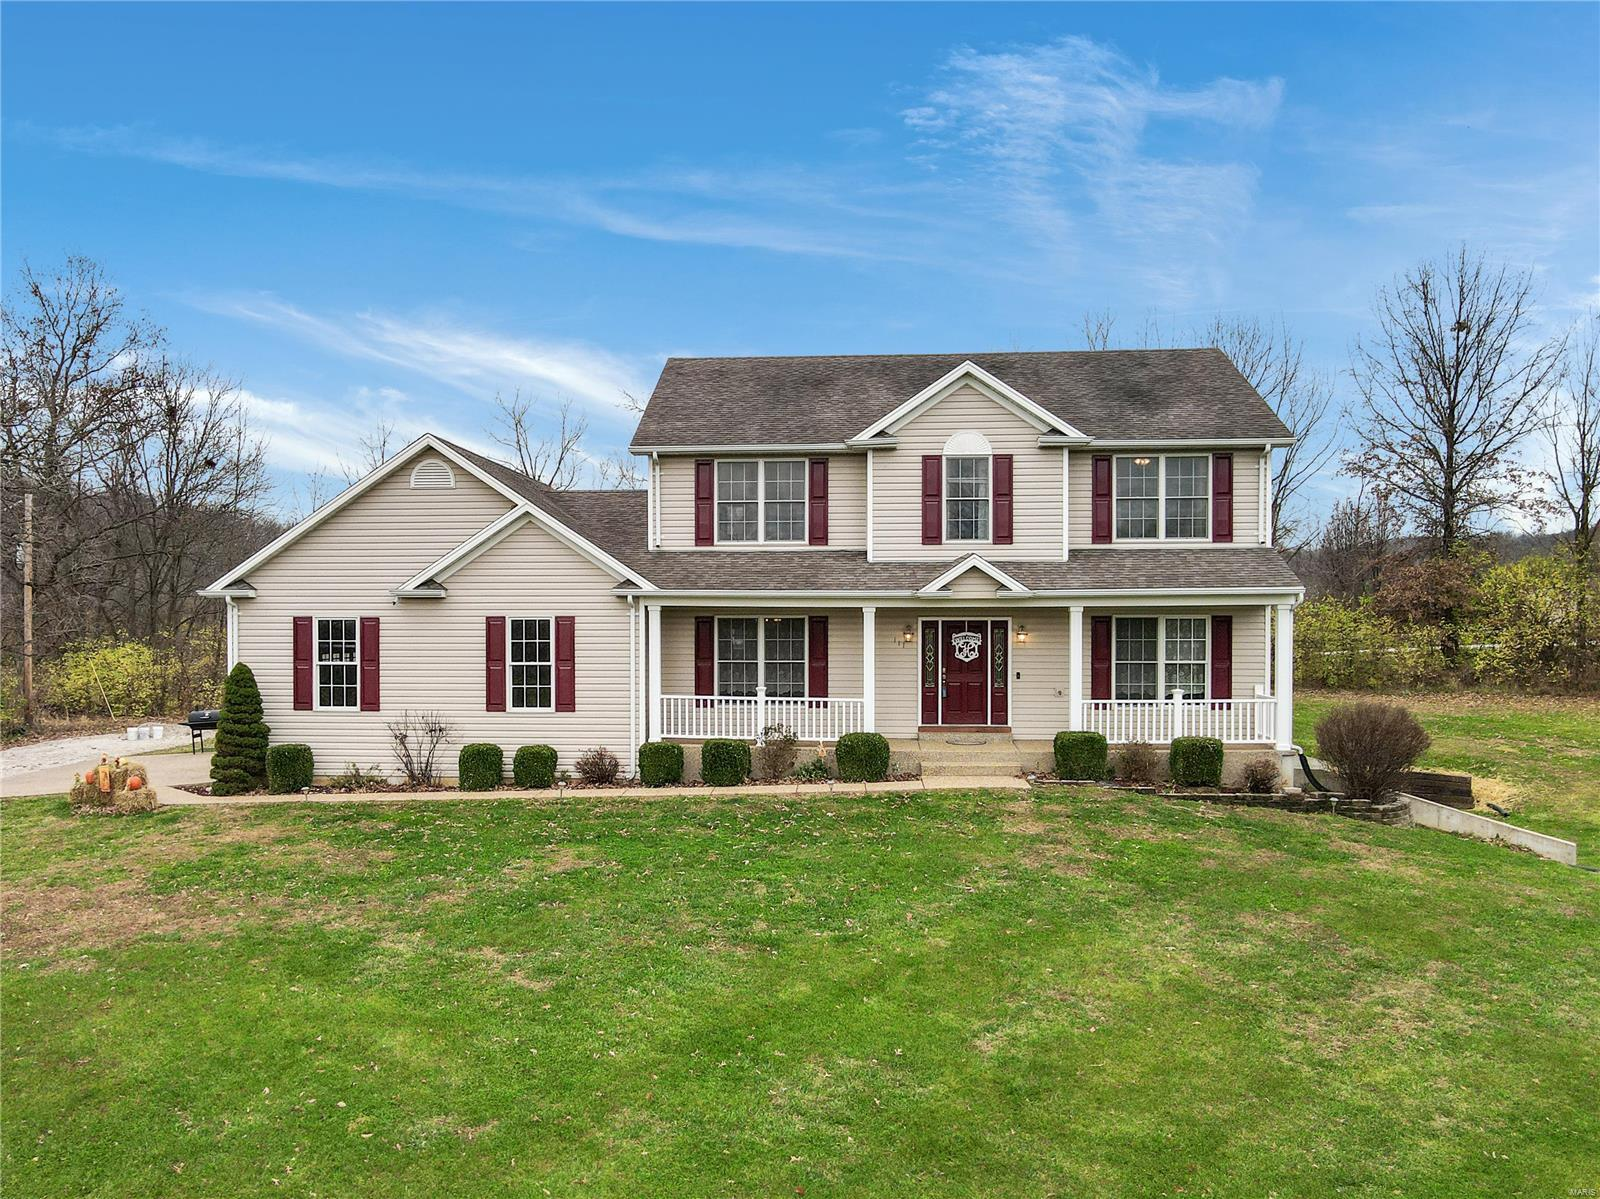 111 Breezy Hill Drive Property Photo - Elsberry, MO real estate listing